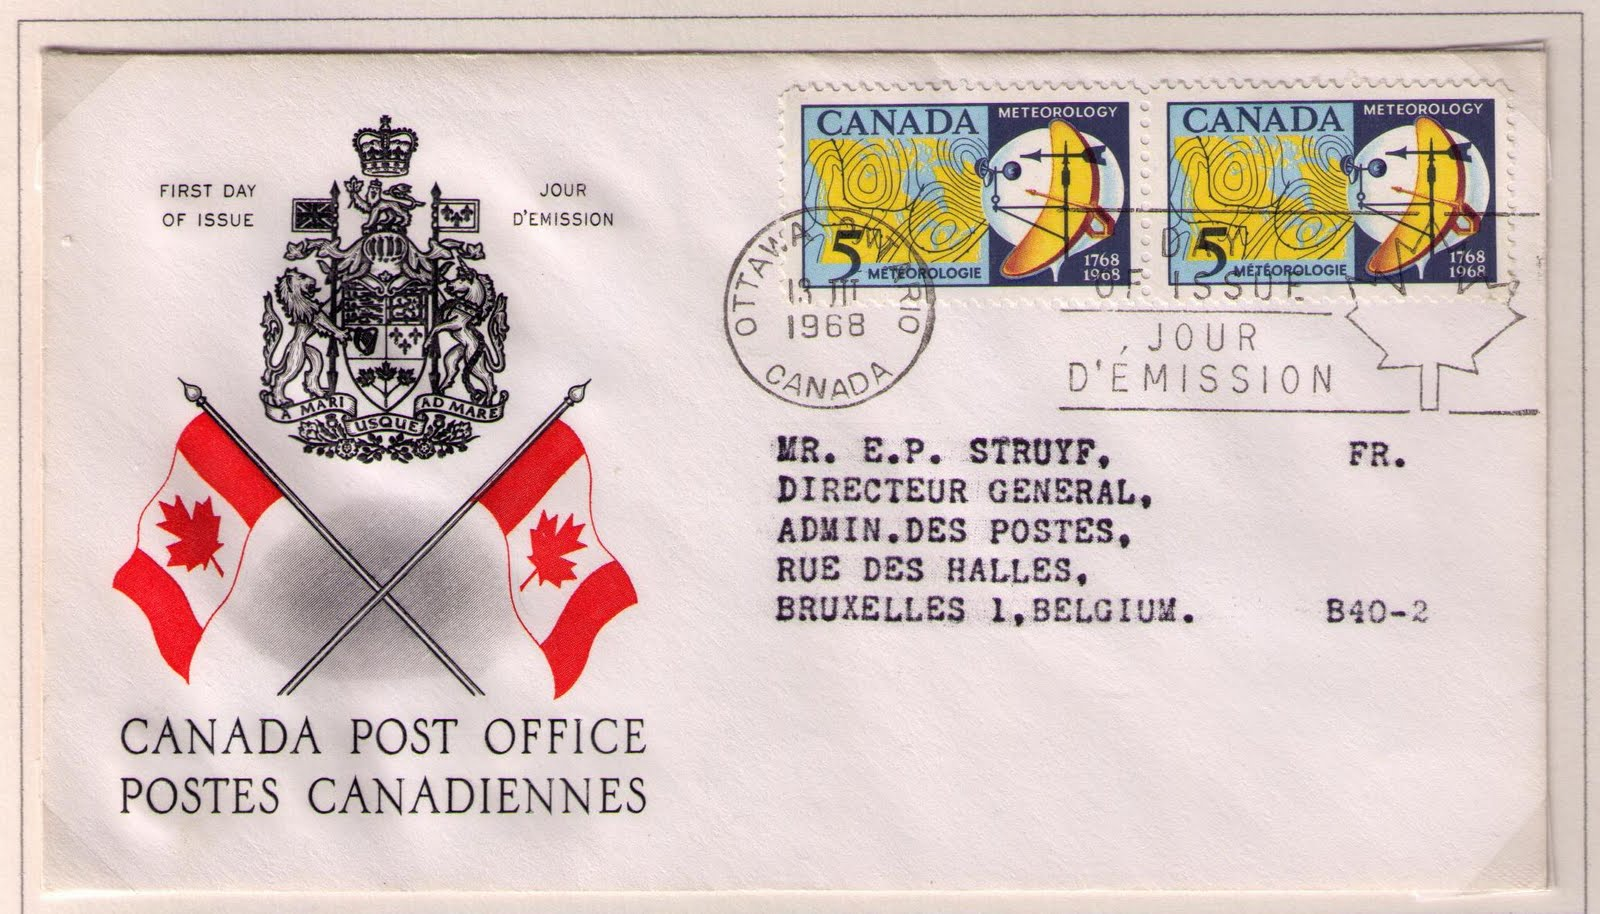 Cachet: Canada Post Souvenir Sheet of Five Canada Beneficial Insects Definitives Postage Stamp Original First Day Cover # 2410a